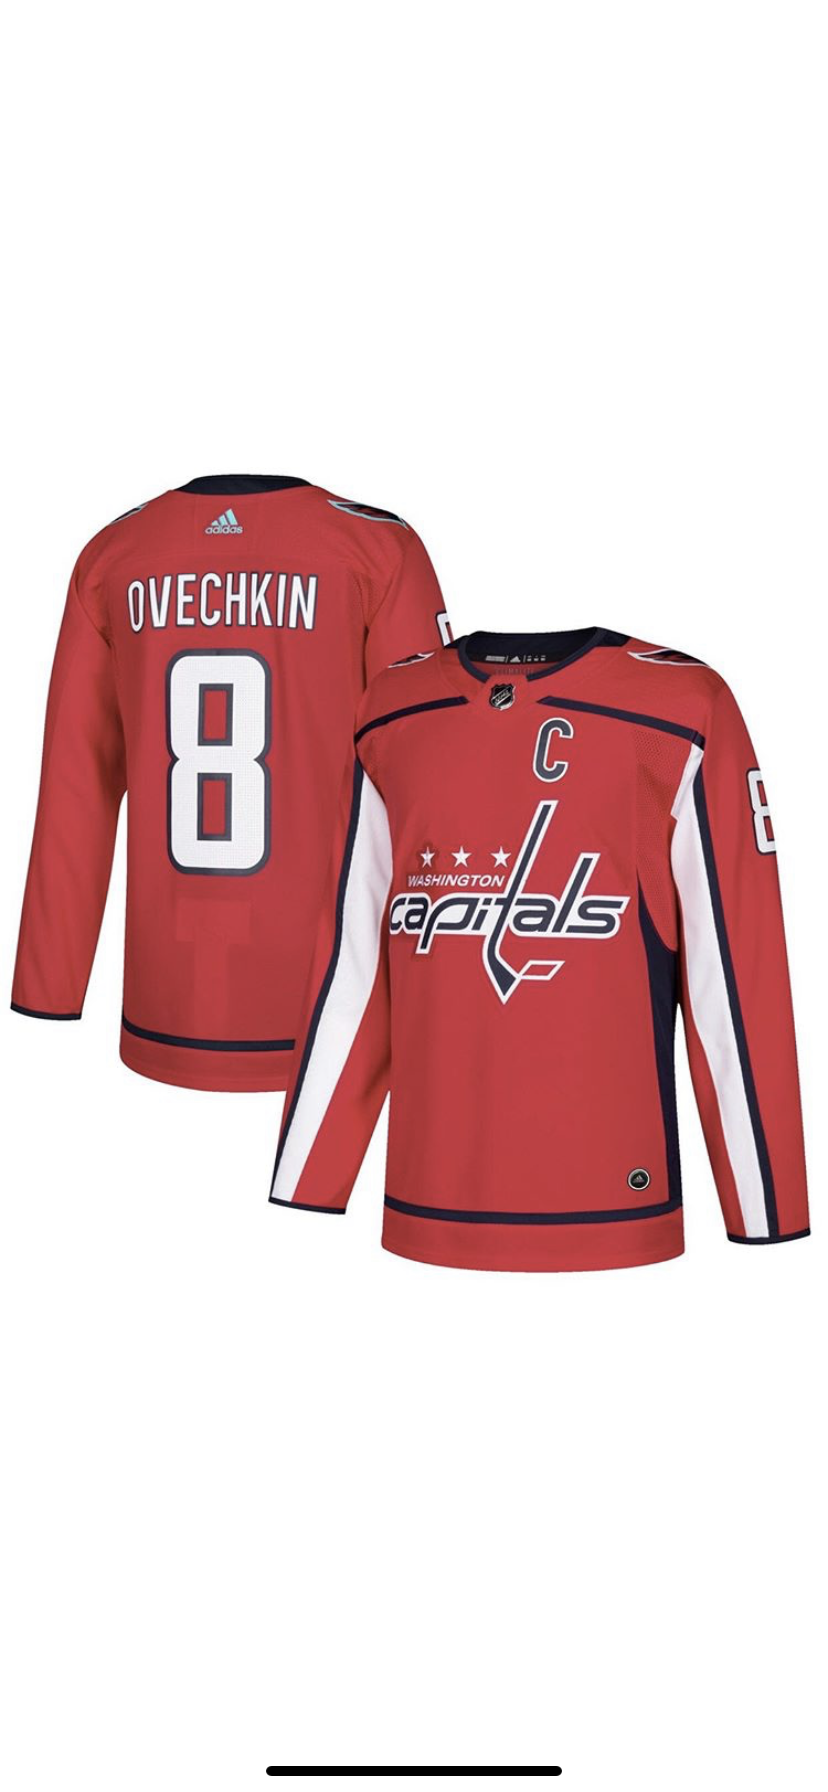 Image of Alex ovechkin capital Jersey